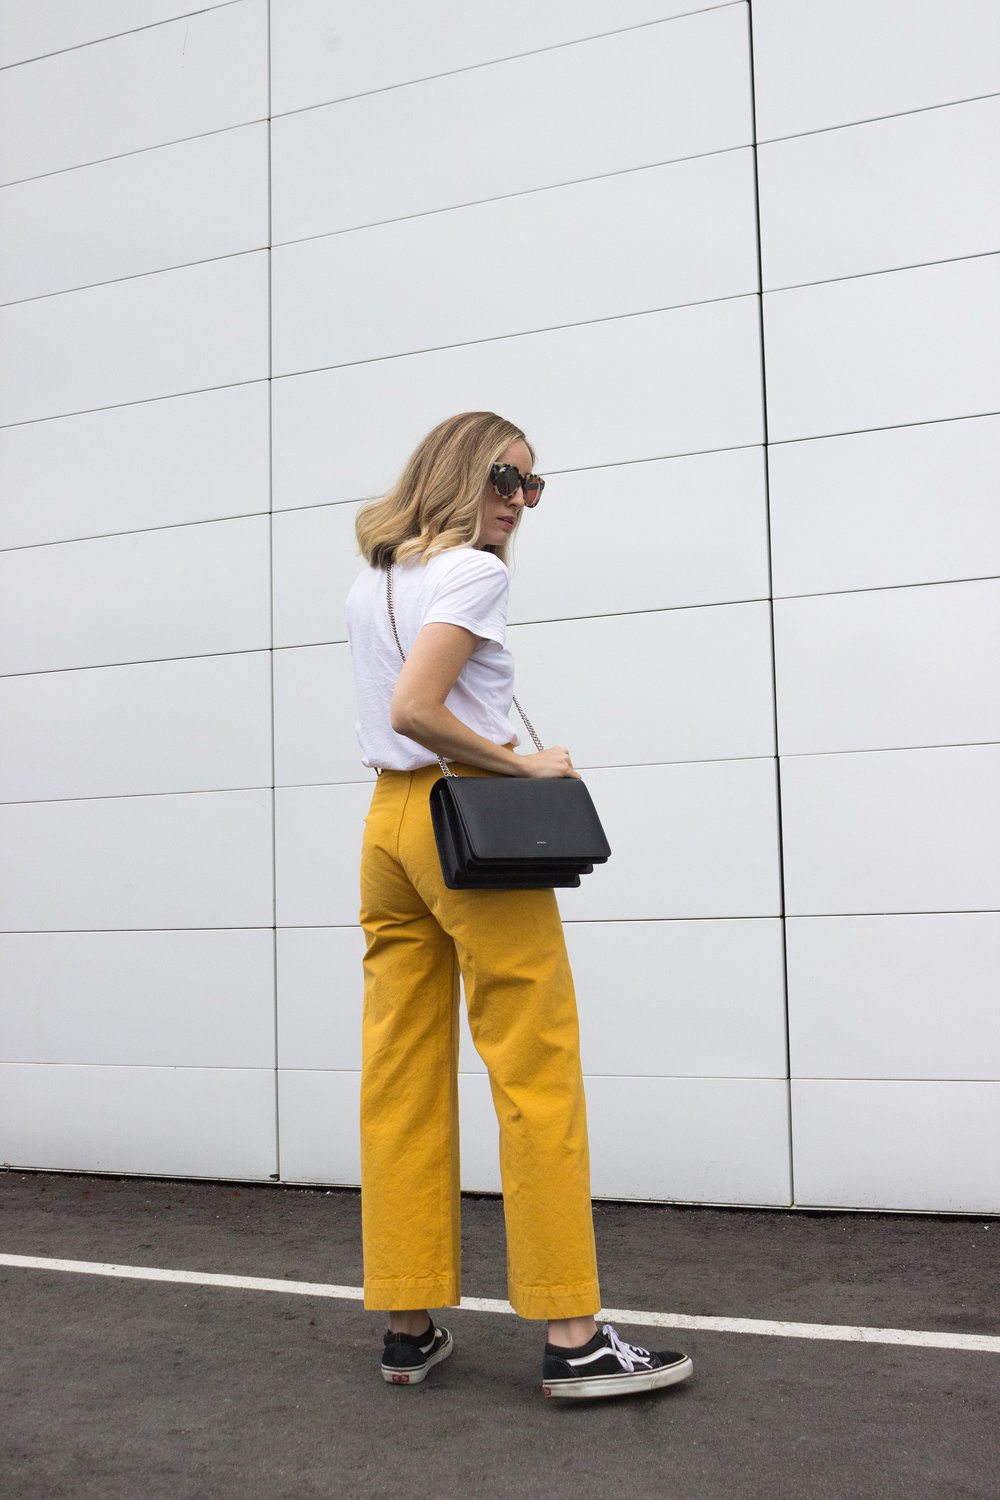 sharday-engel-jessie-kamm-yellow-pants-agneel-bag-vans-3.jpg